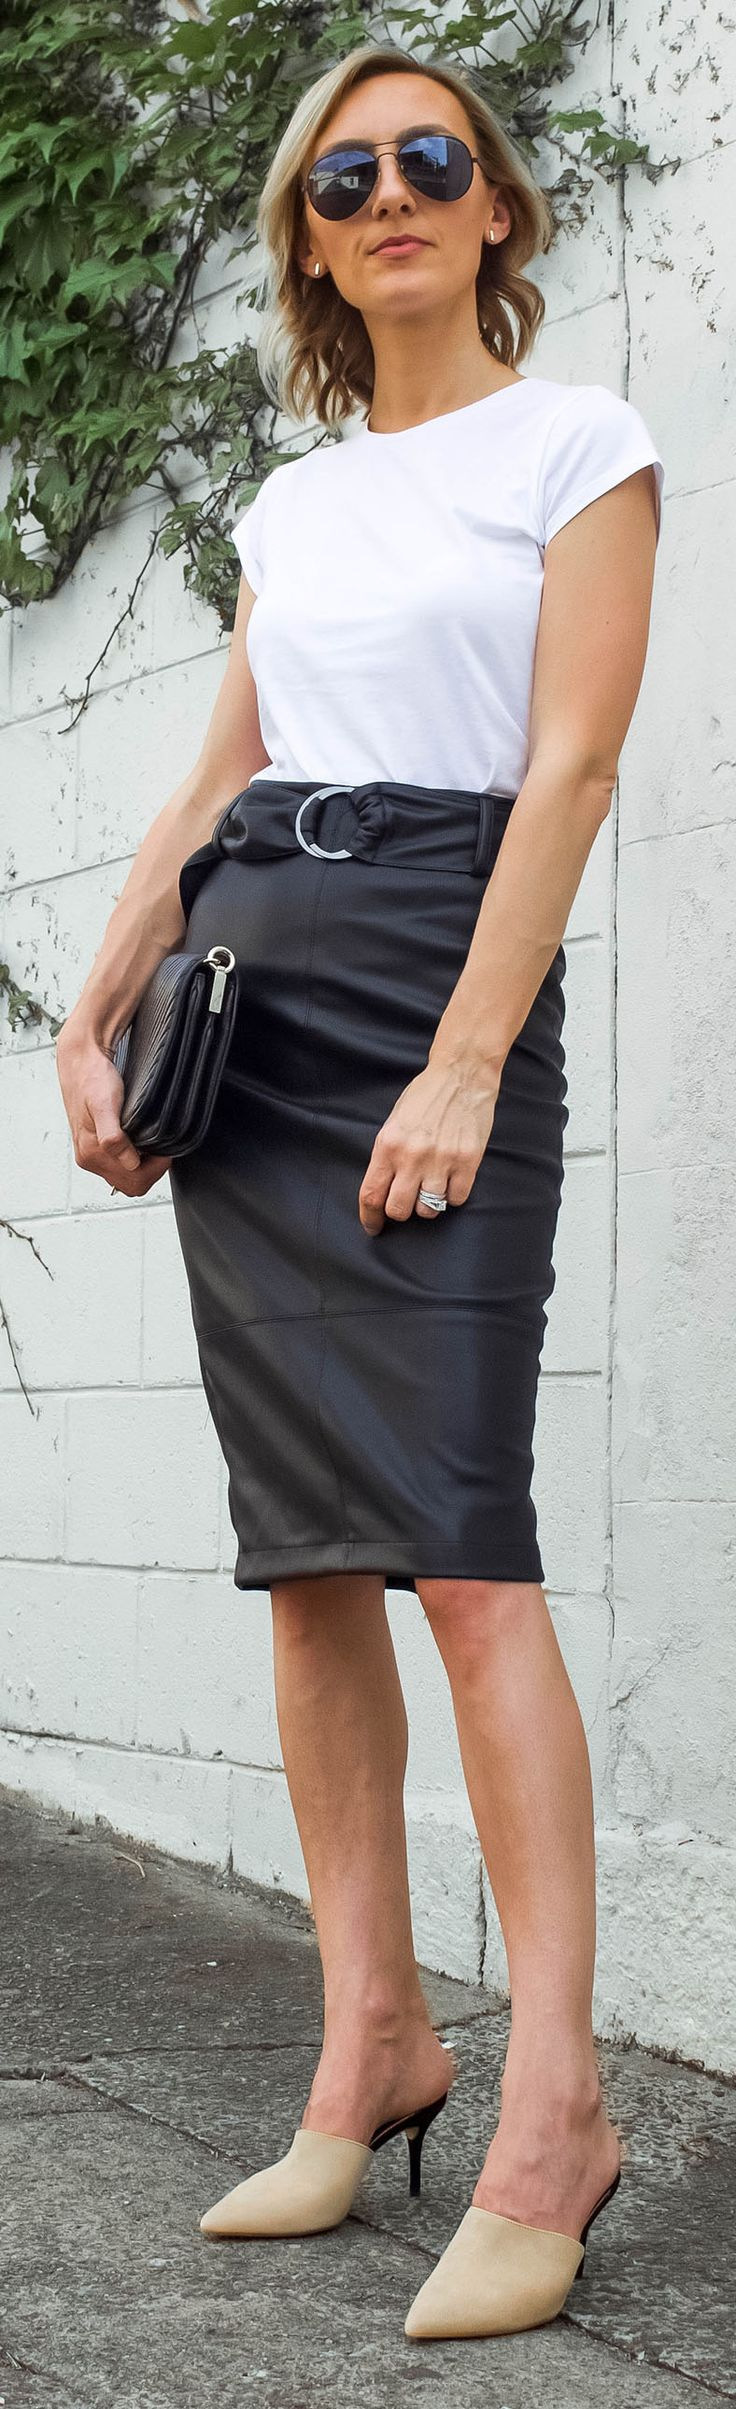 Leather skirt, high waisted skirt, white tee, mules, black and white outfit, monochrome, nude heels, black aviators, trans-seasonal style, spring/autumn outfit, street style @thelustlife_